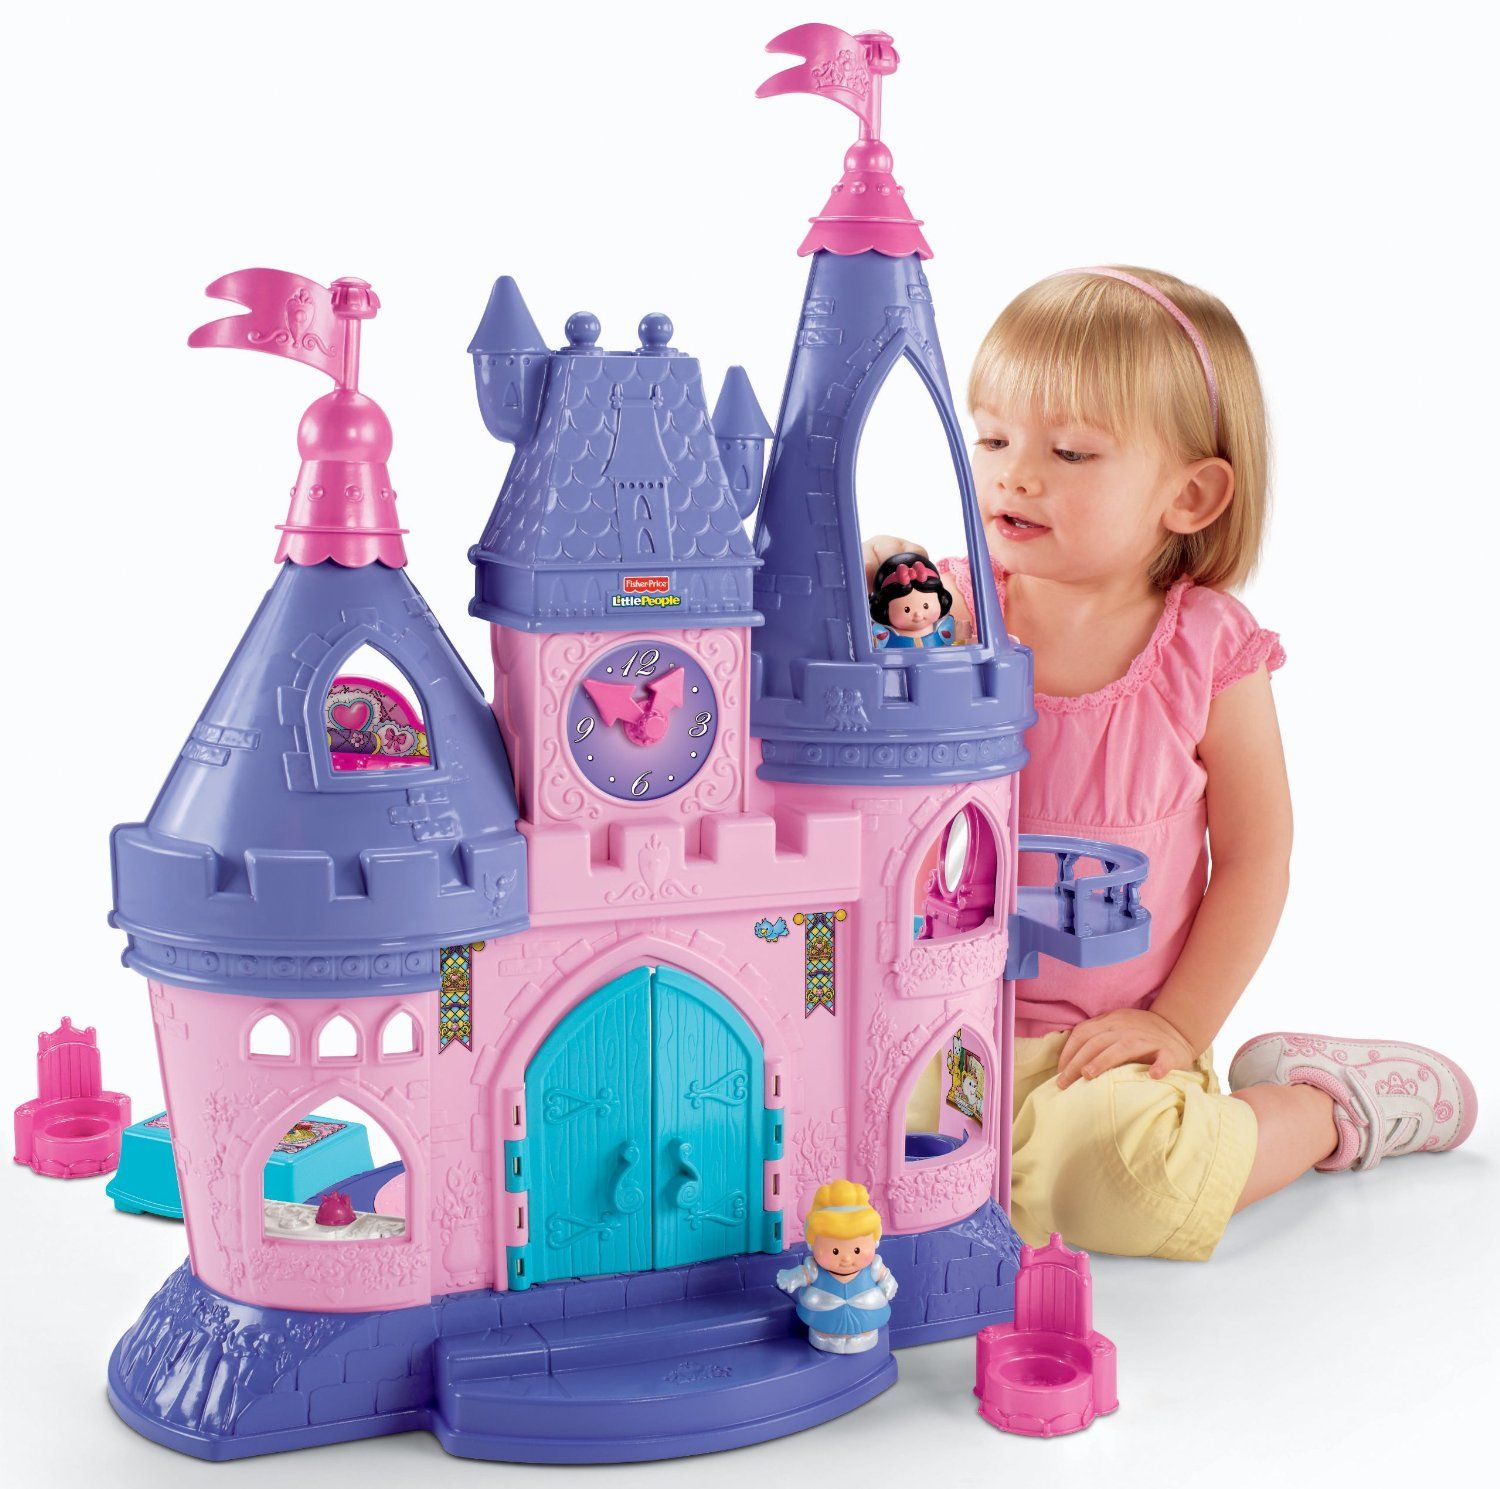 Top toys for 2 Yr Old Girl Images